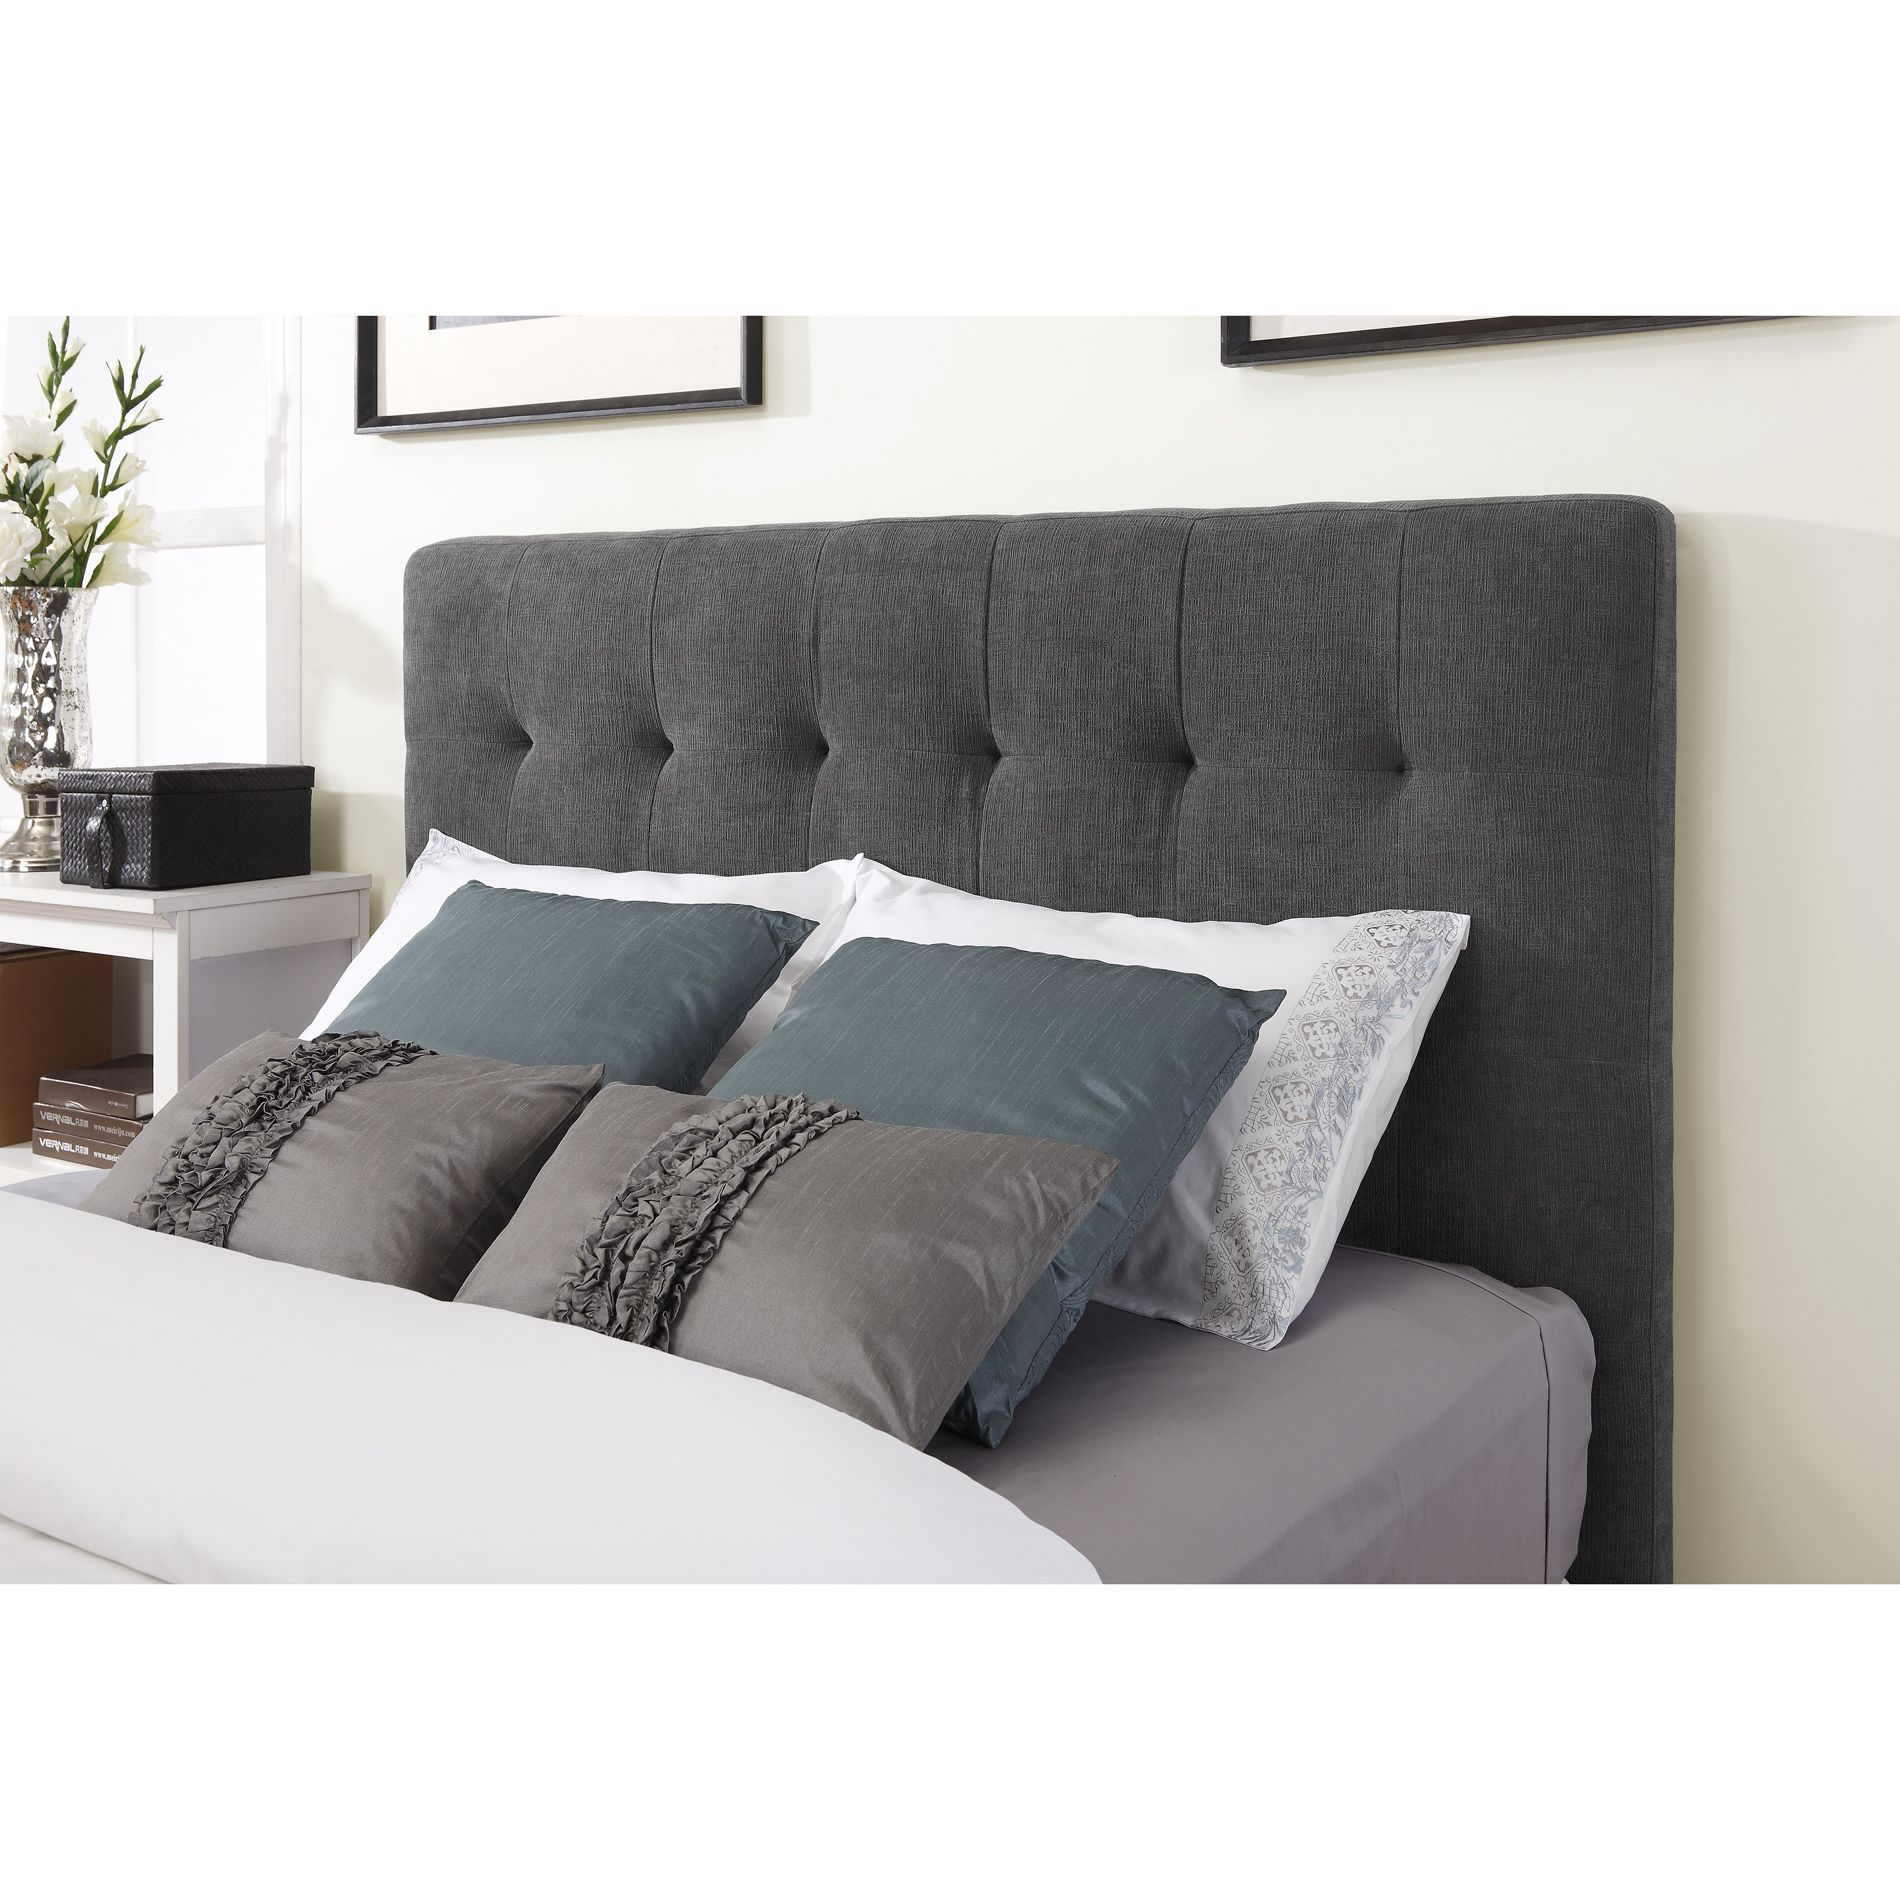 huge discount 4822a c0048 Dorel Signature Harper Steel Grey Headboard - Available in ...